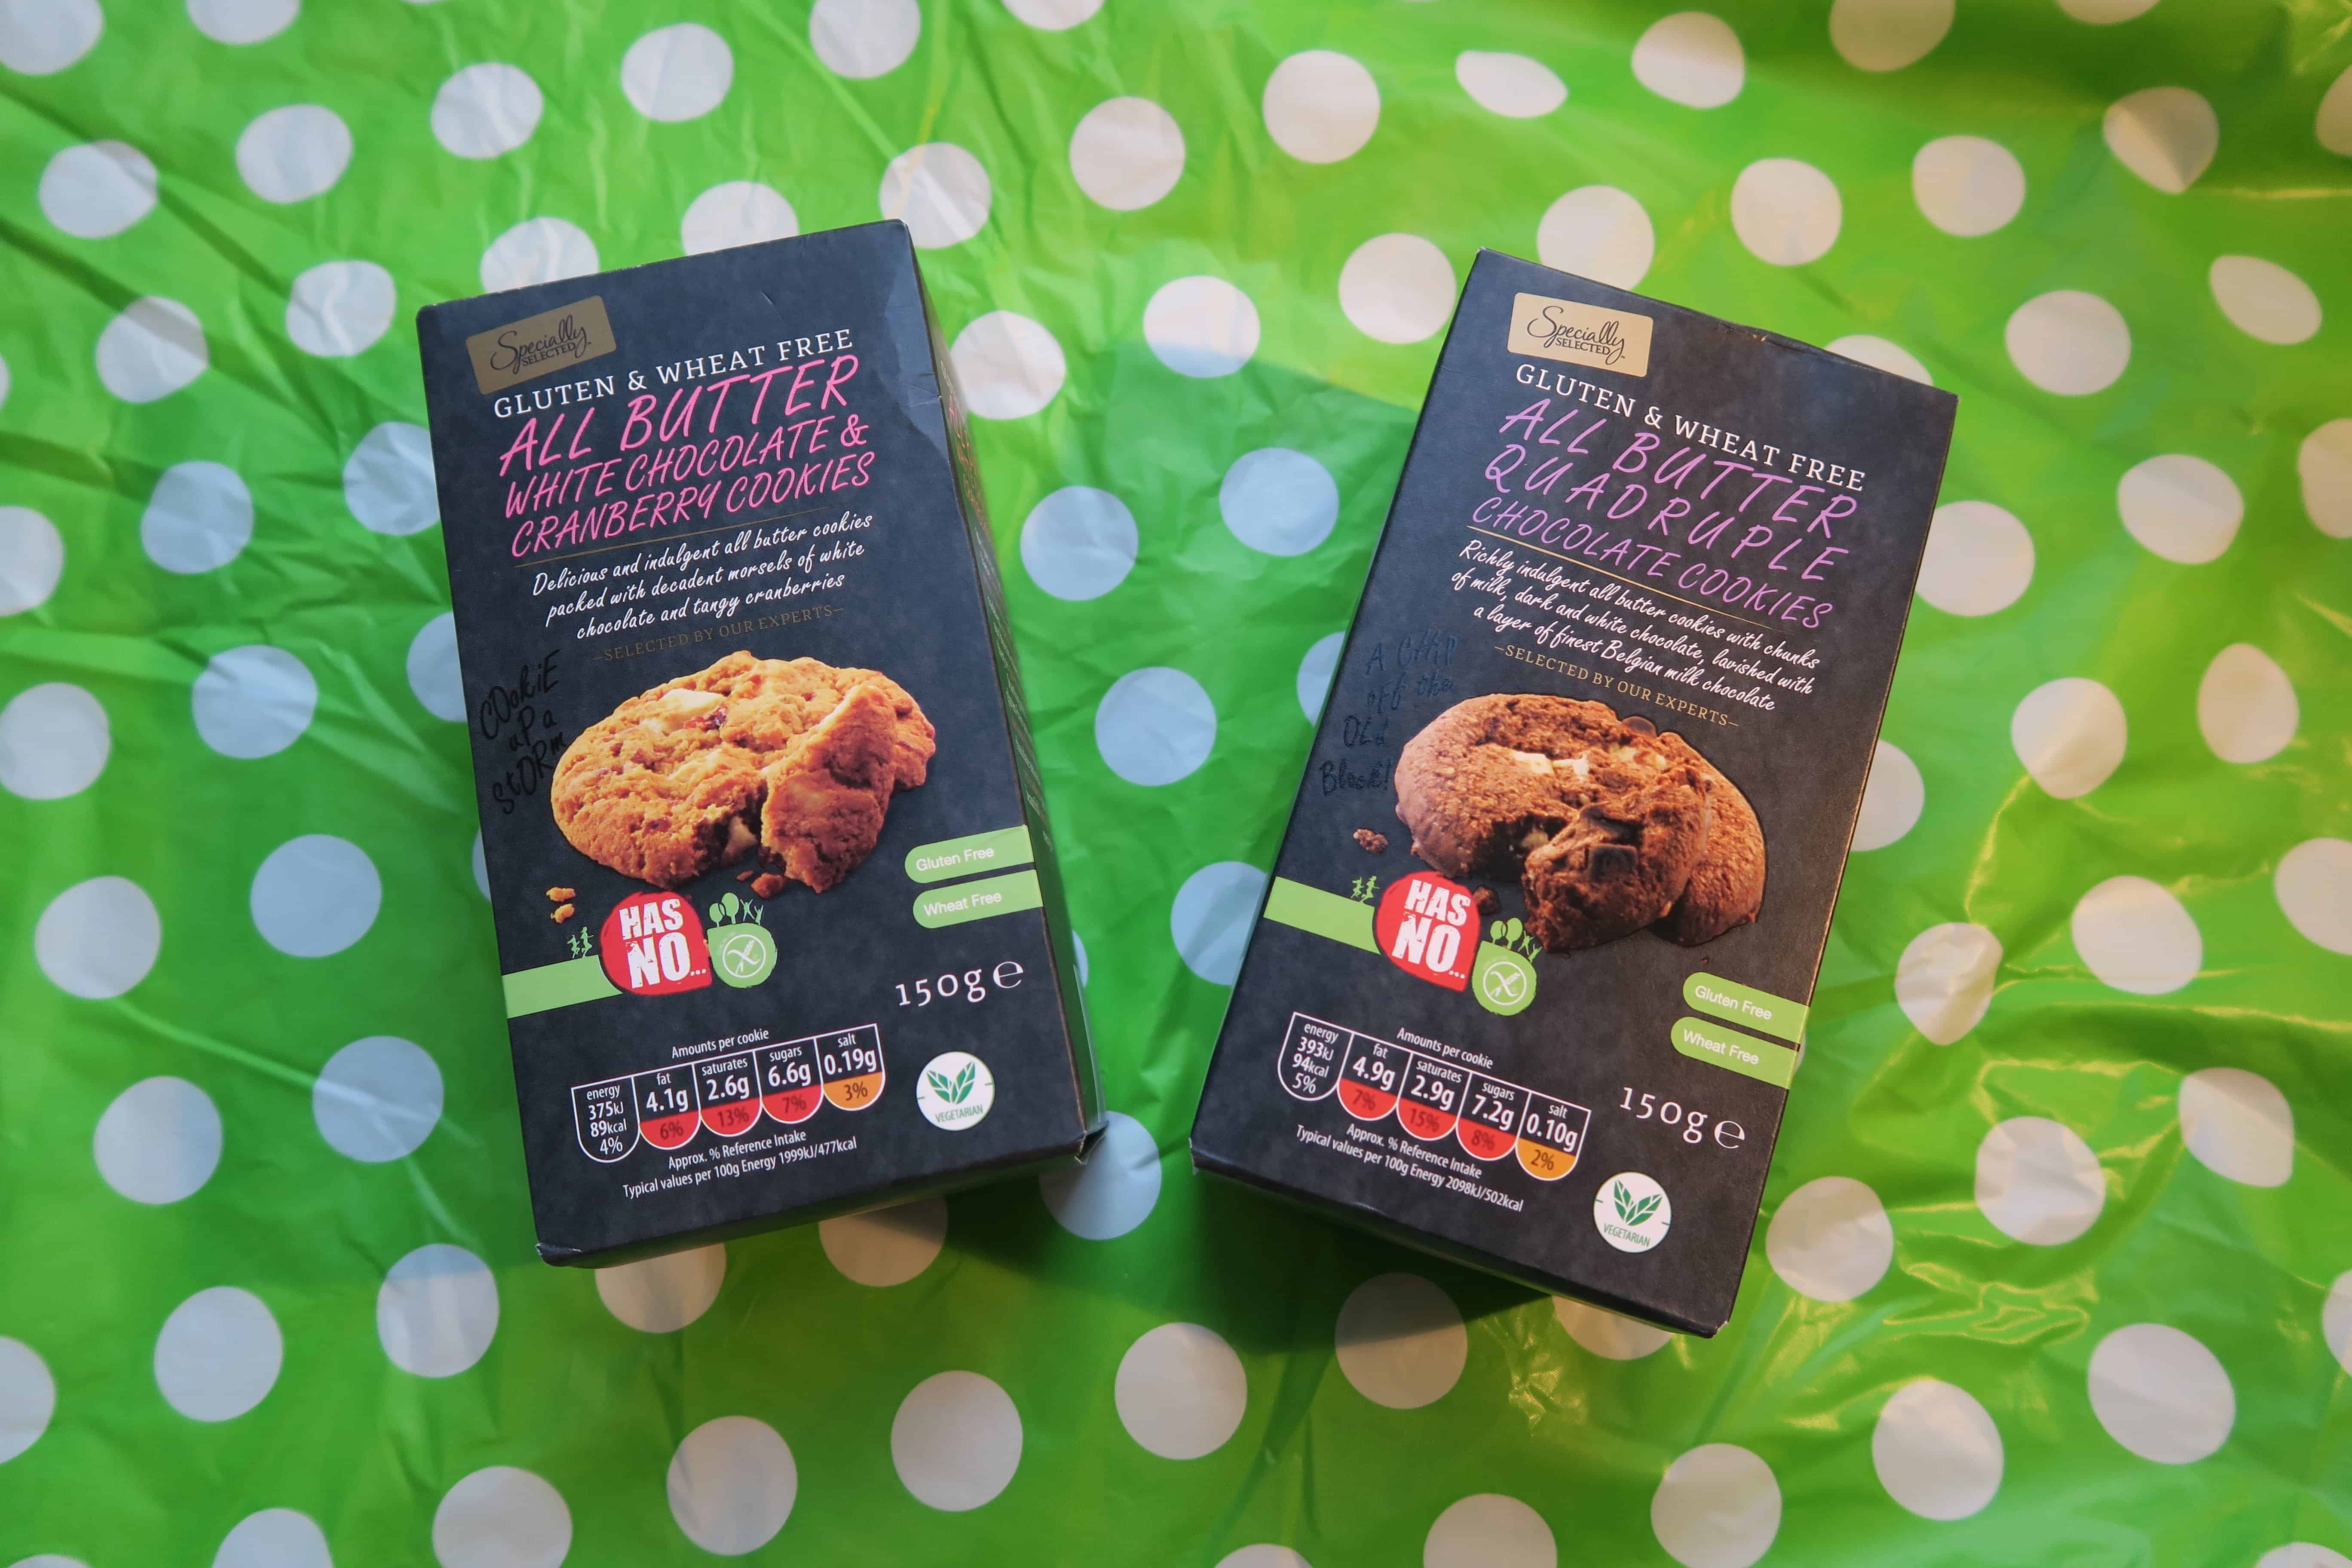 gluten and wheat free cookies aldi